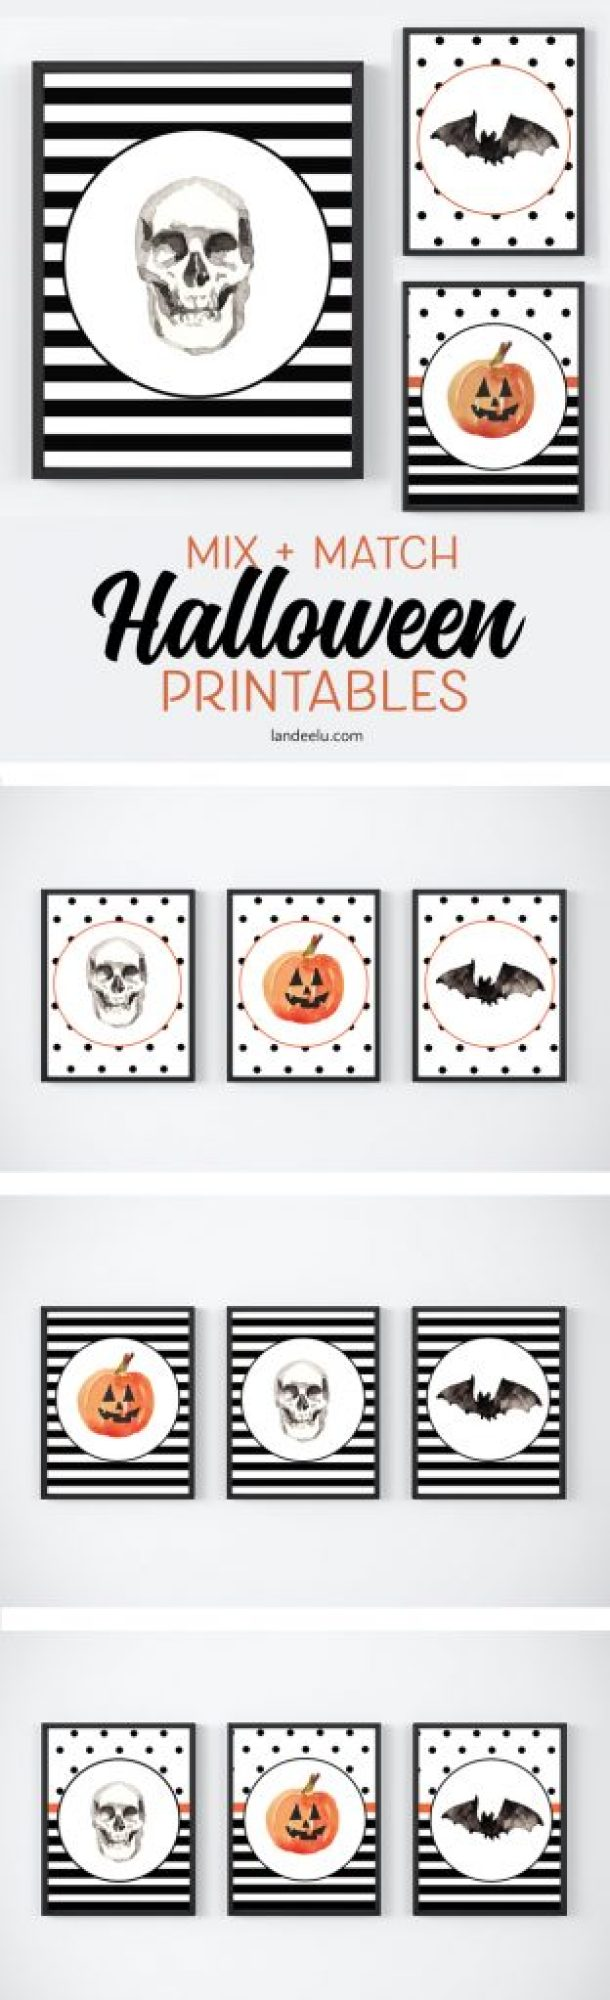 Darling mix and match Halloween printables available in many different sizes!